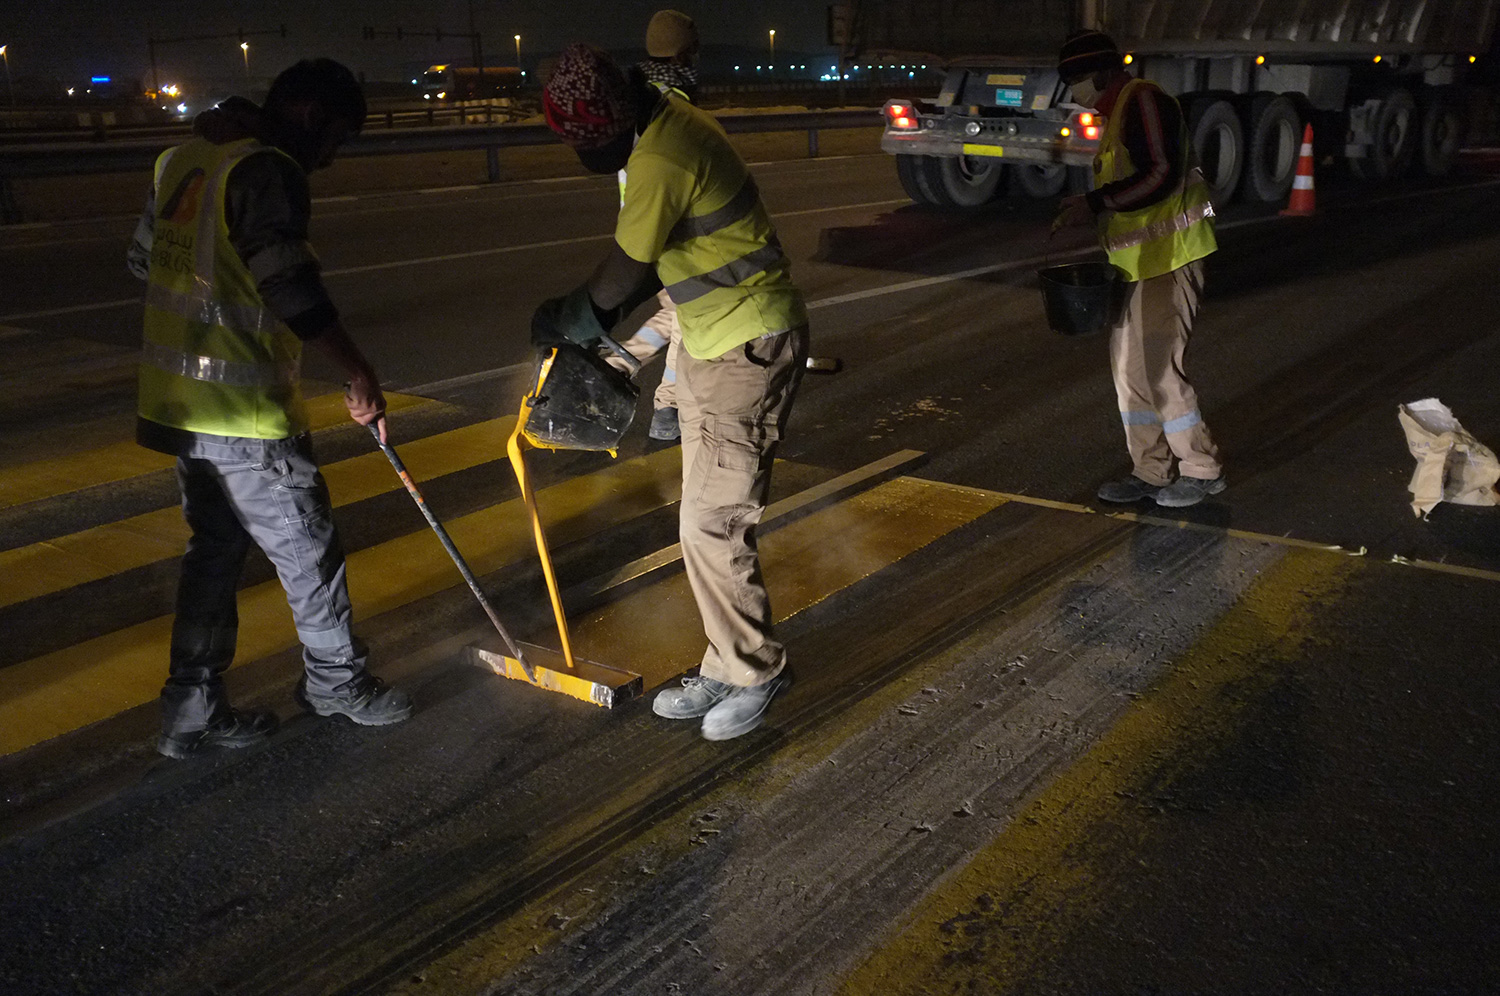 Road Marking crew  Jabal Ali-Lehbab Road, Dubai